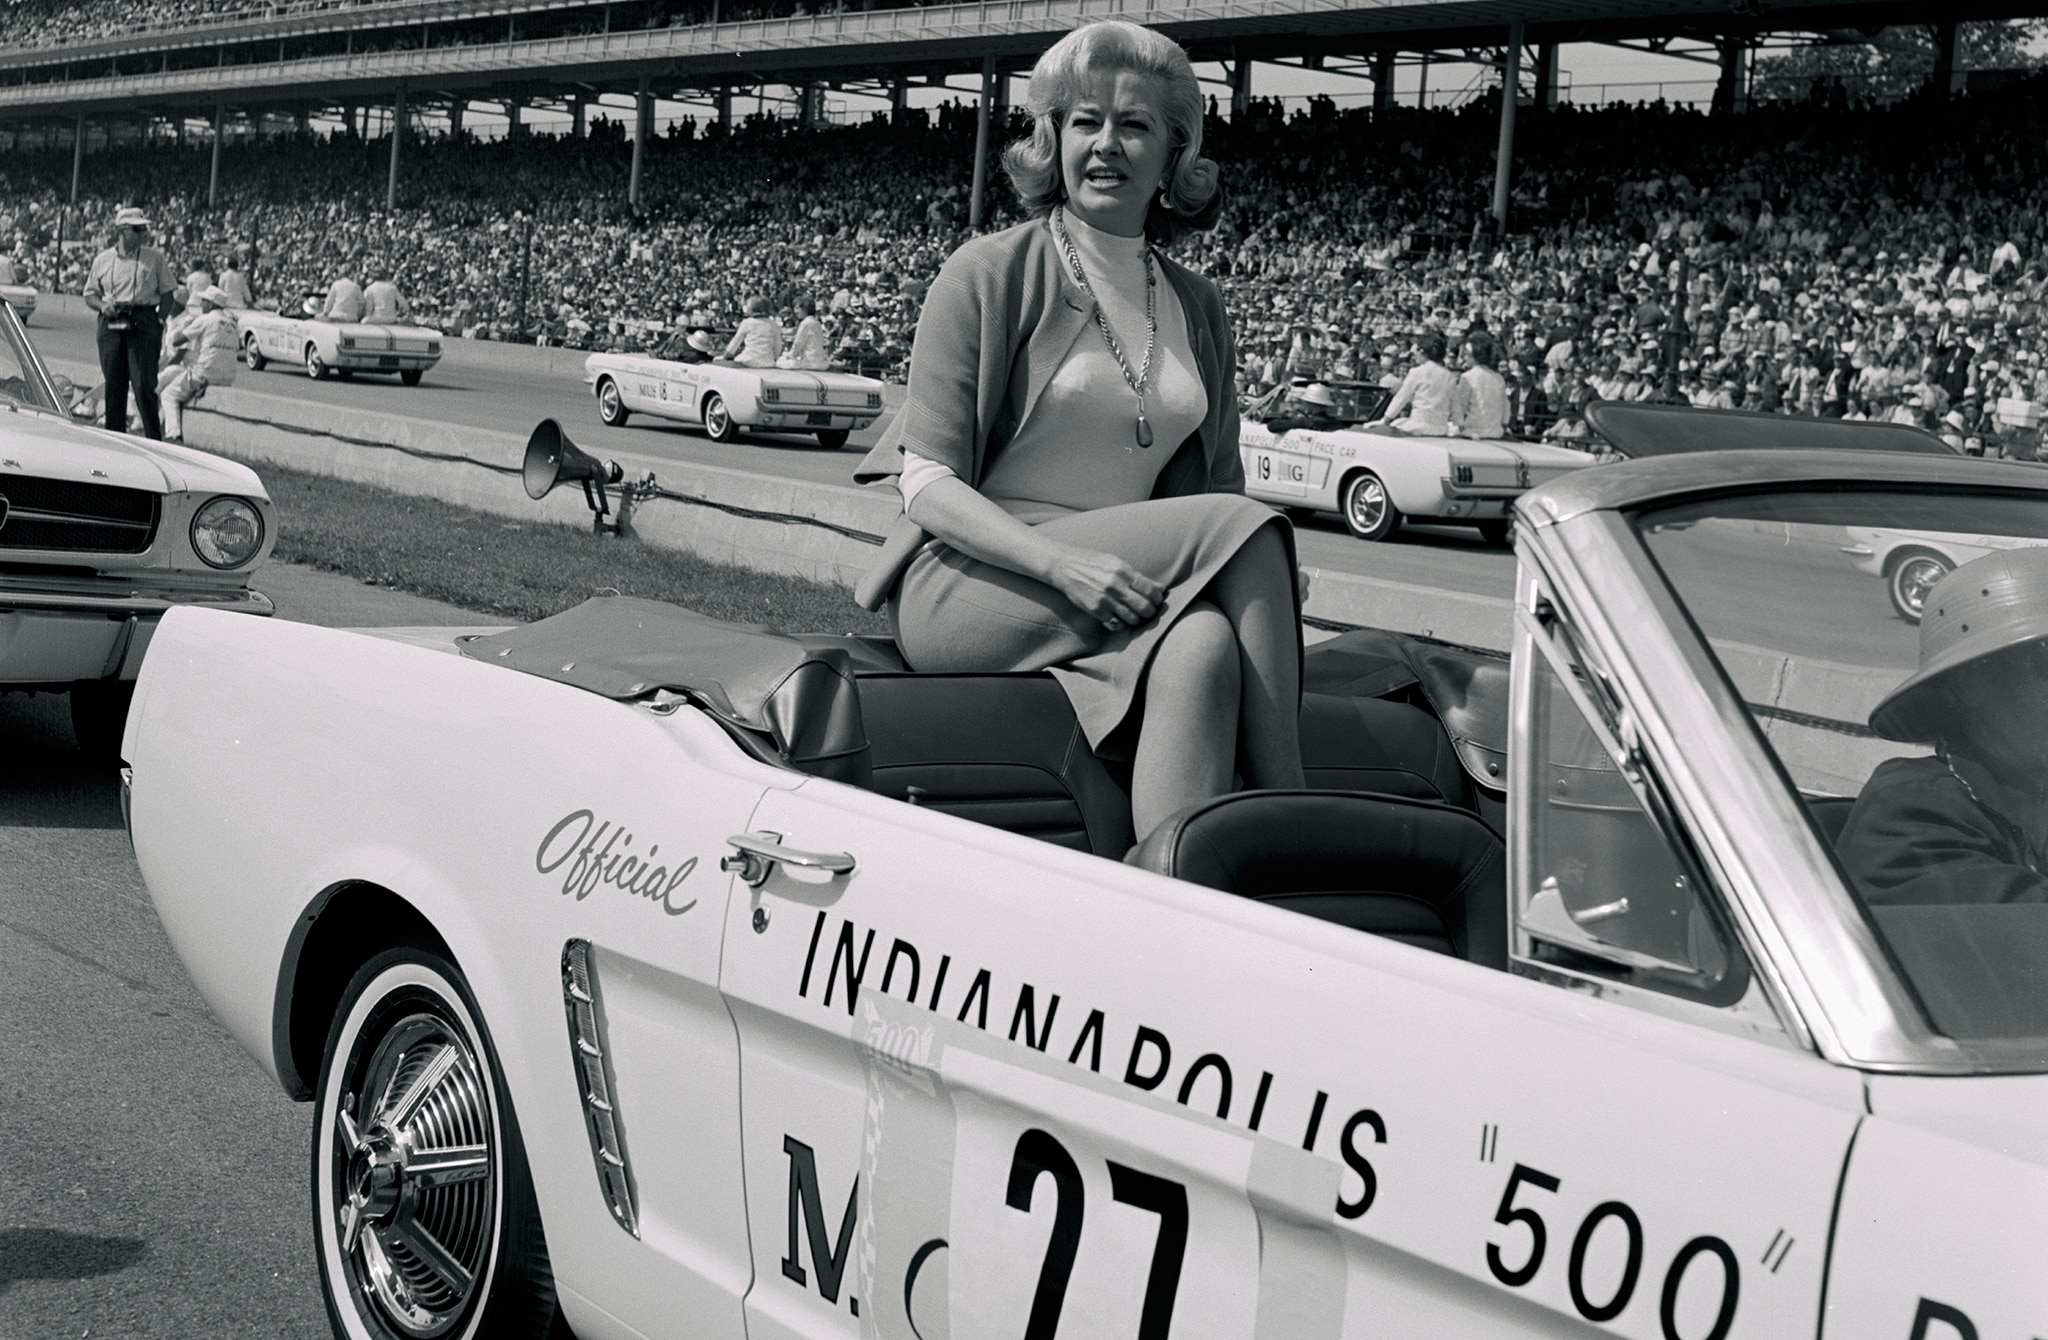 Ford Mustang 1964 Indy 500 Pace Car Queen